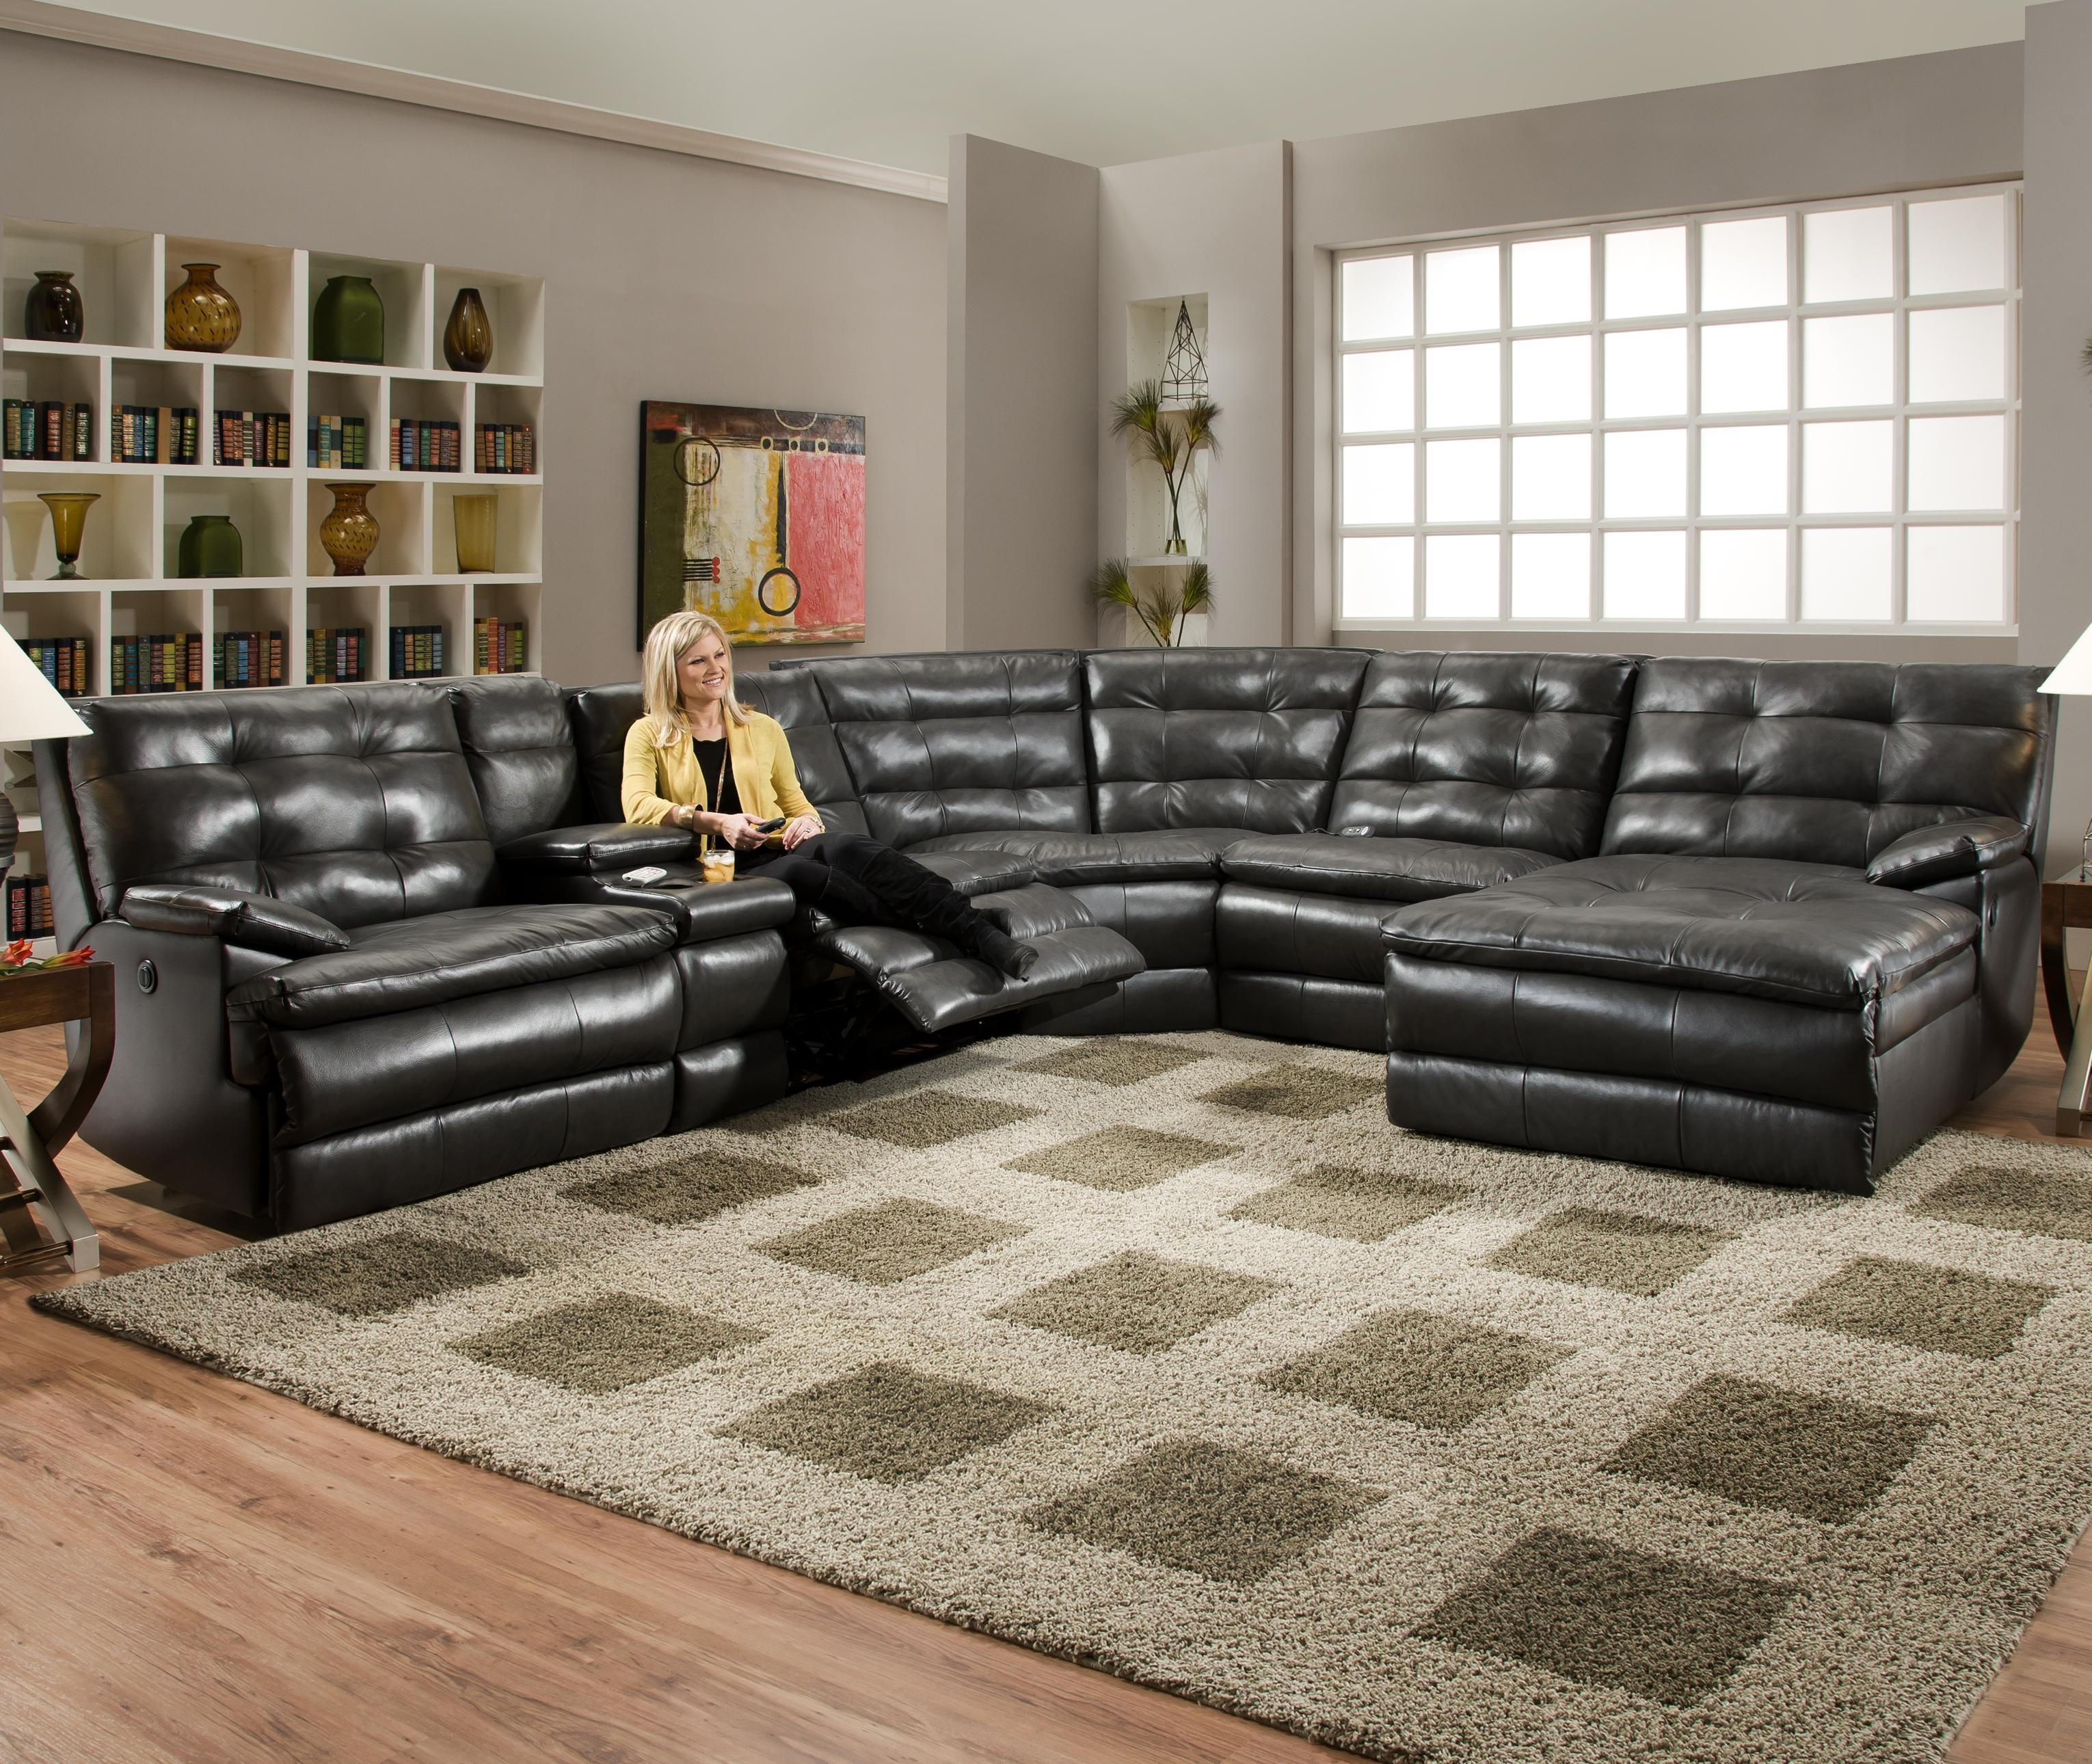 Great Leather Sectional Sofa With Power Recliner 14 On U Shaped In U Shaped Reclining Sectional (Image 14 of 20)